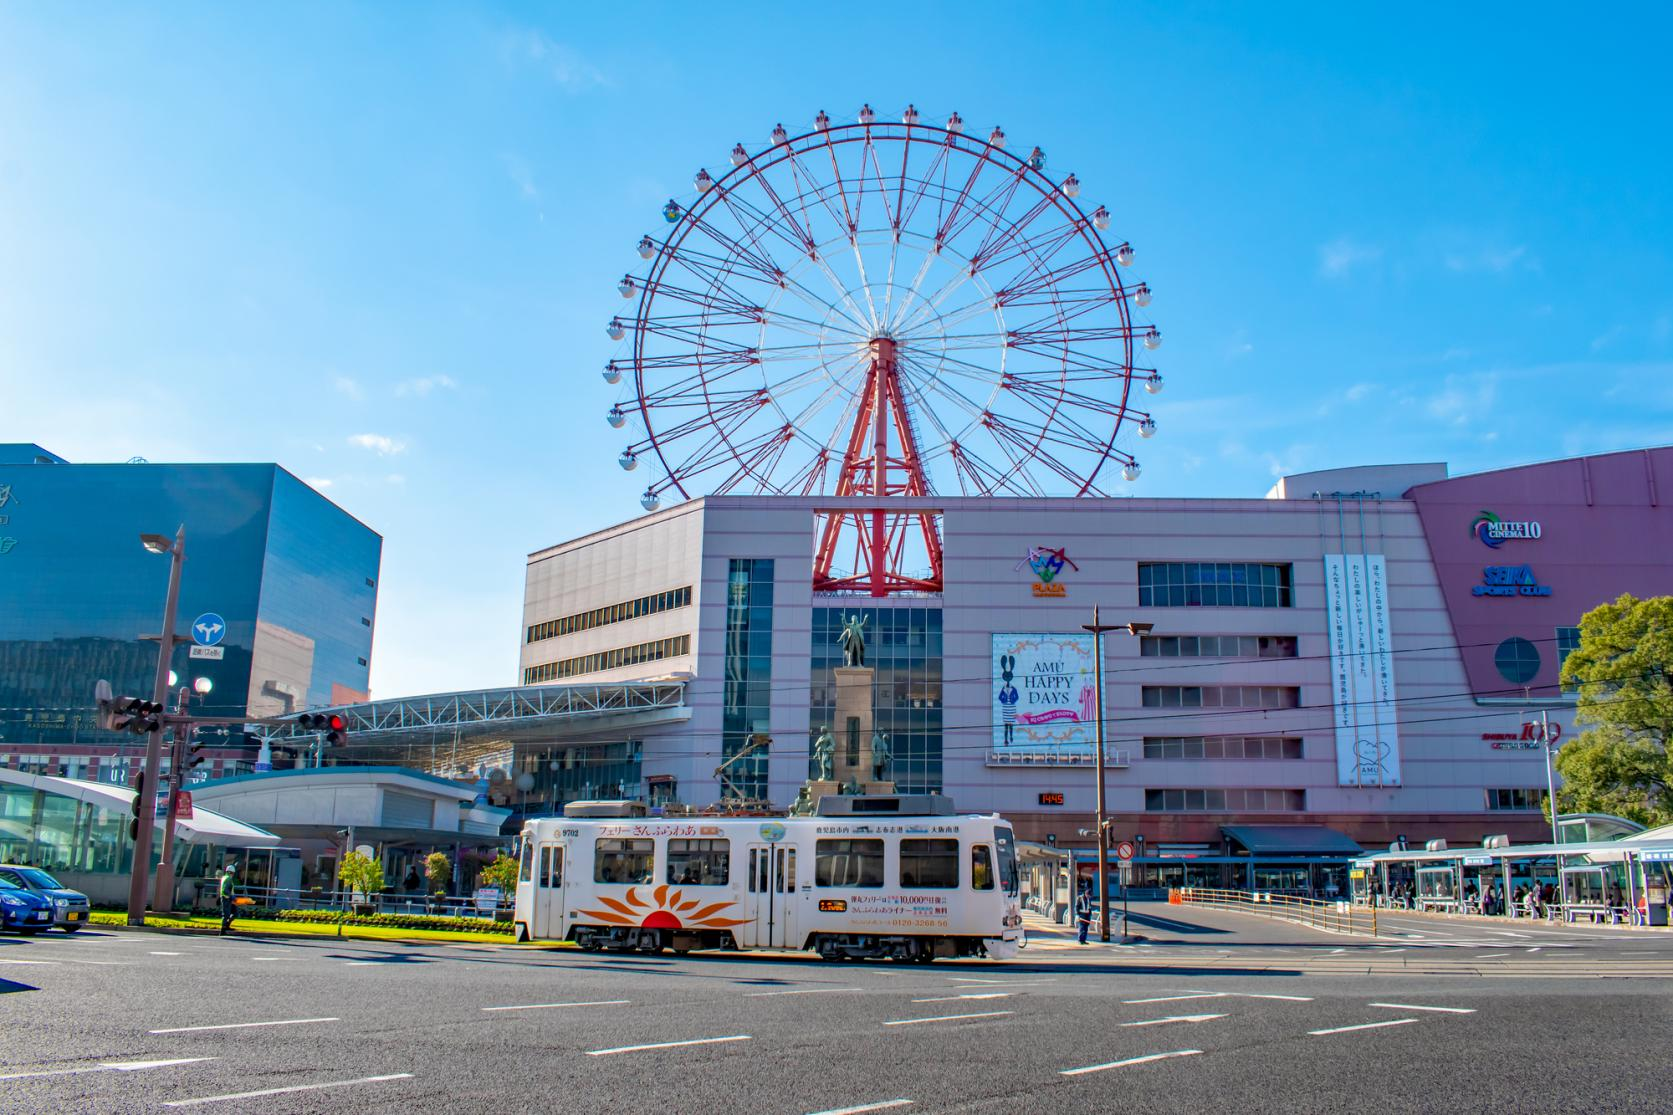 If you take the Kyushu Shinkansen, accommodations near Kagoshima Chuo Station are recommended.-0